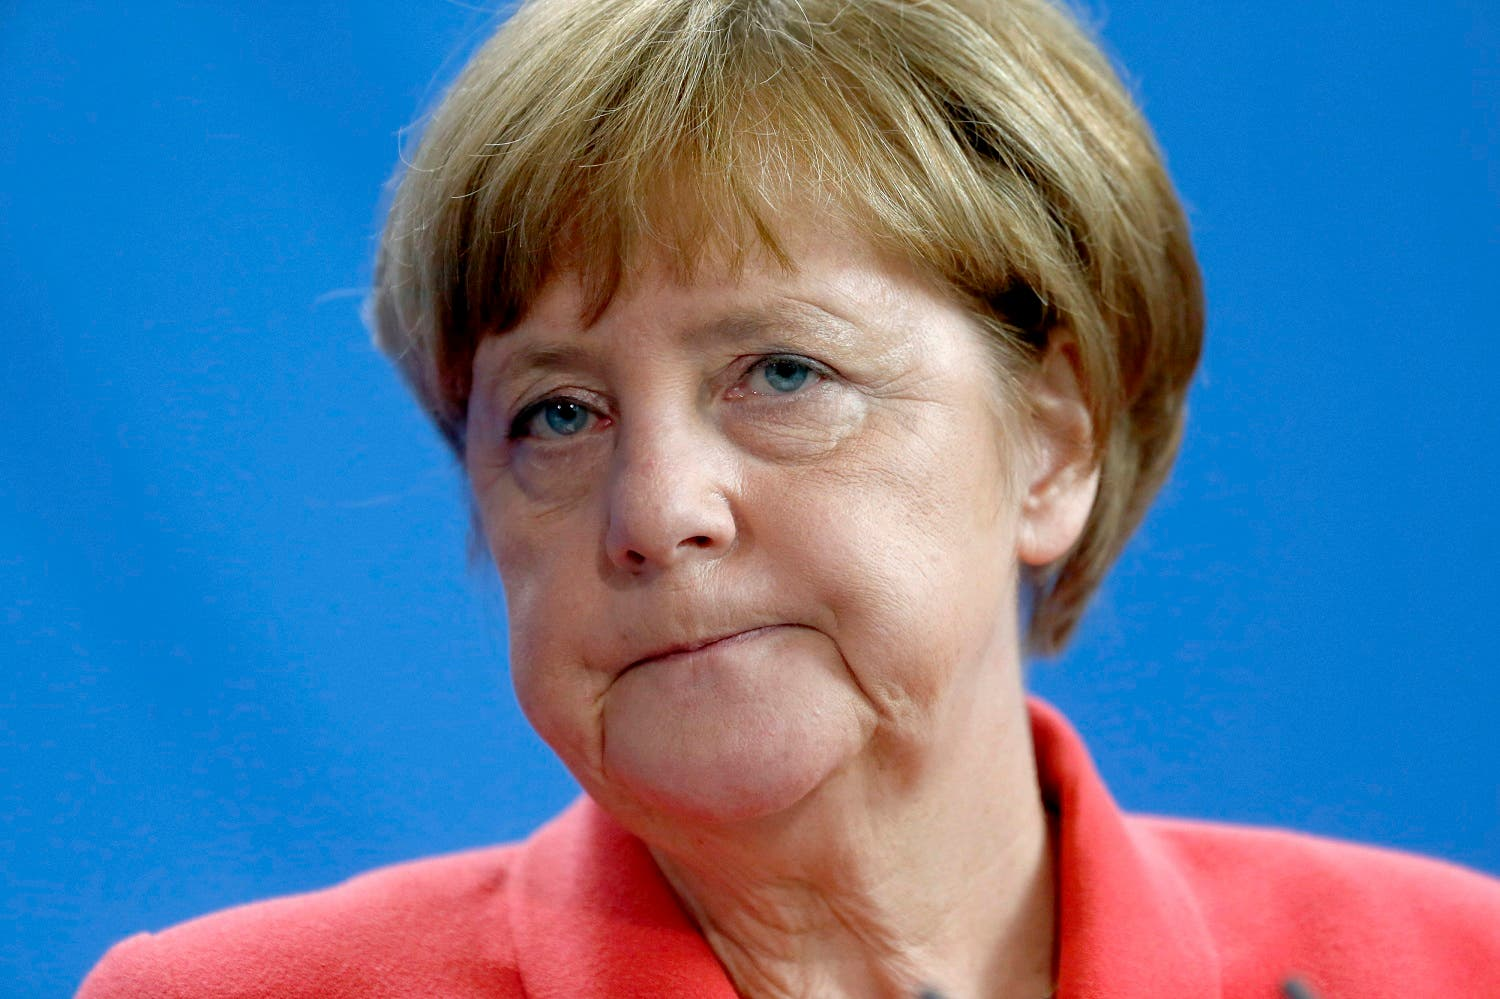 German Chancellor Angela Merkel attends a news conference following talks with NATO Secretary-General Jens Stoltenberg at the Chancellery in Berlin, Germany, June 2, 2016. REUTERS